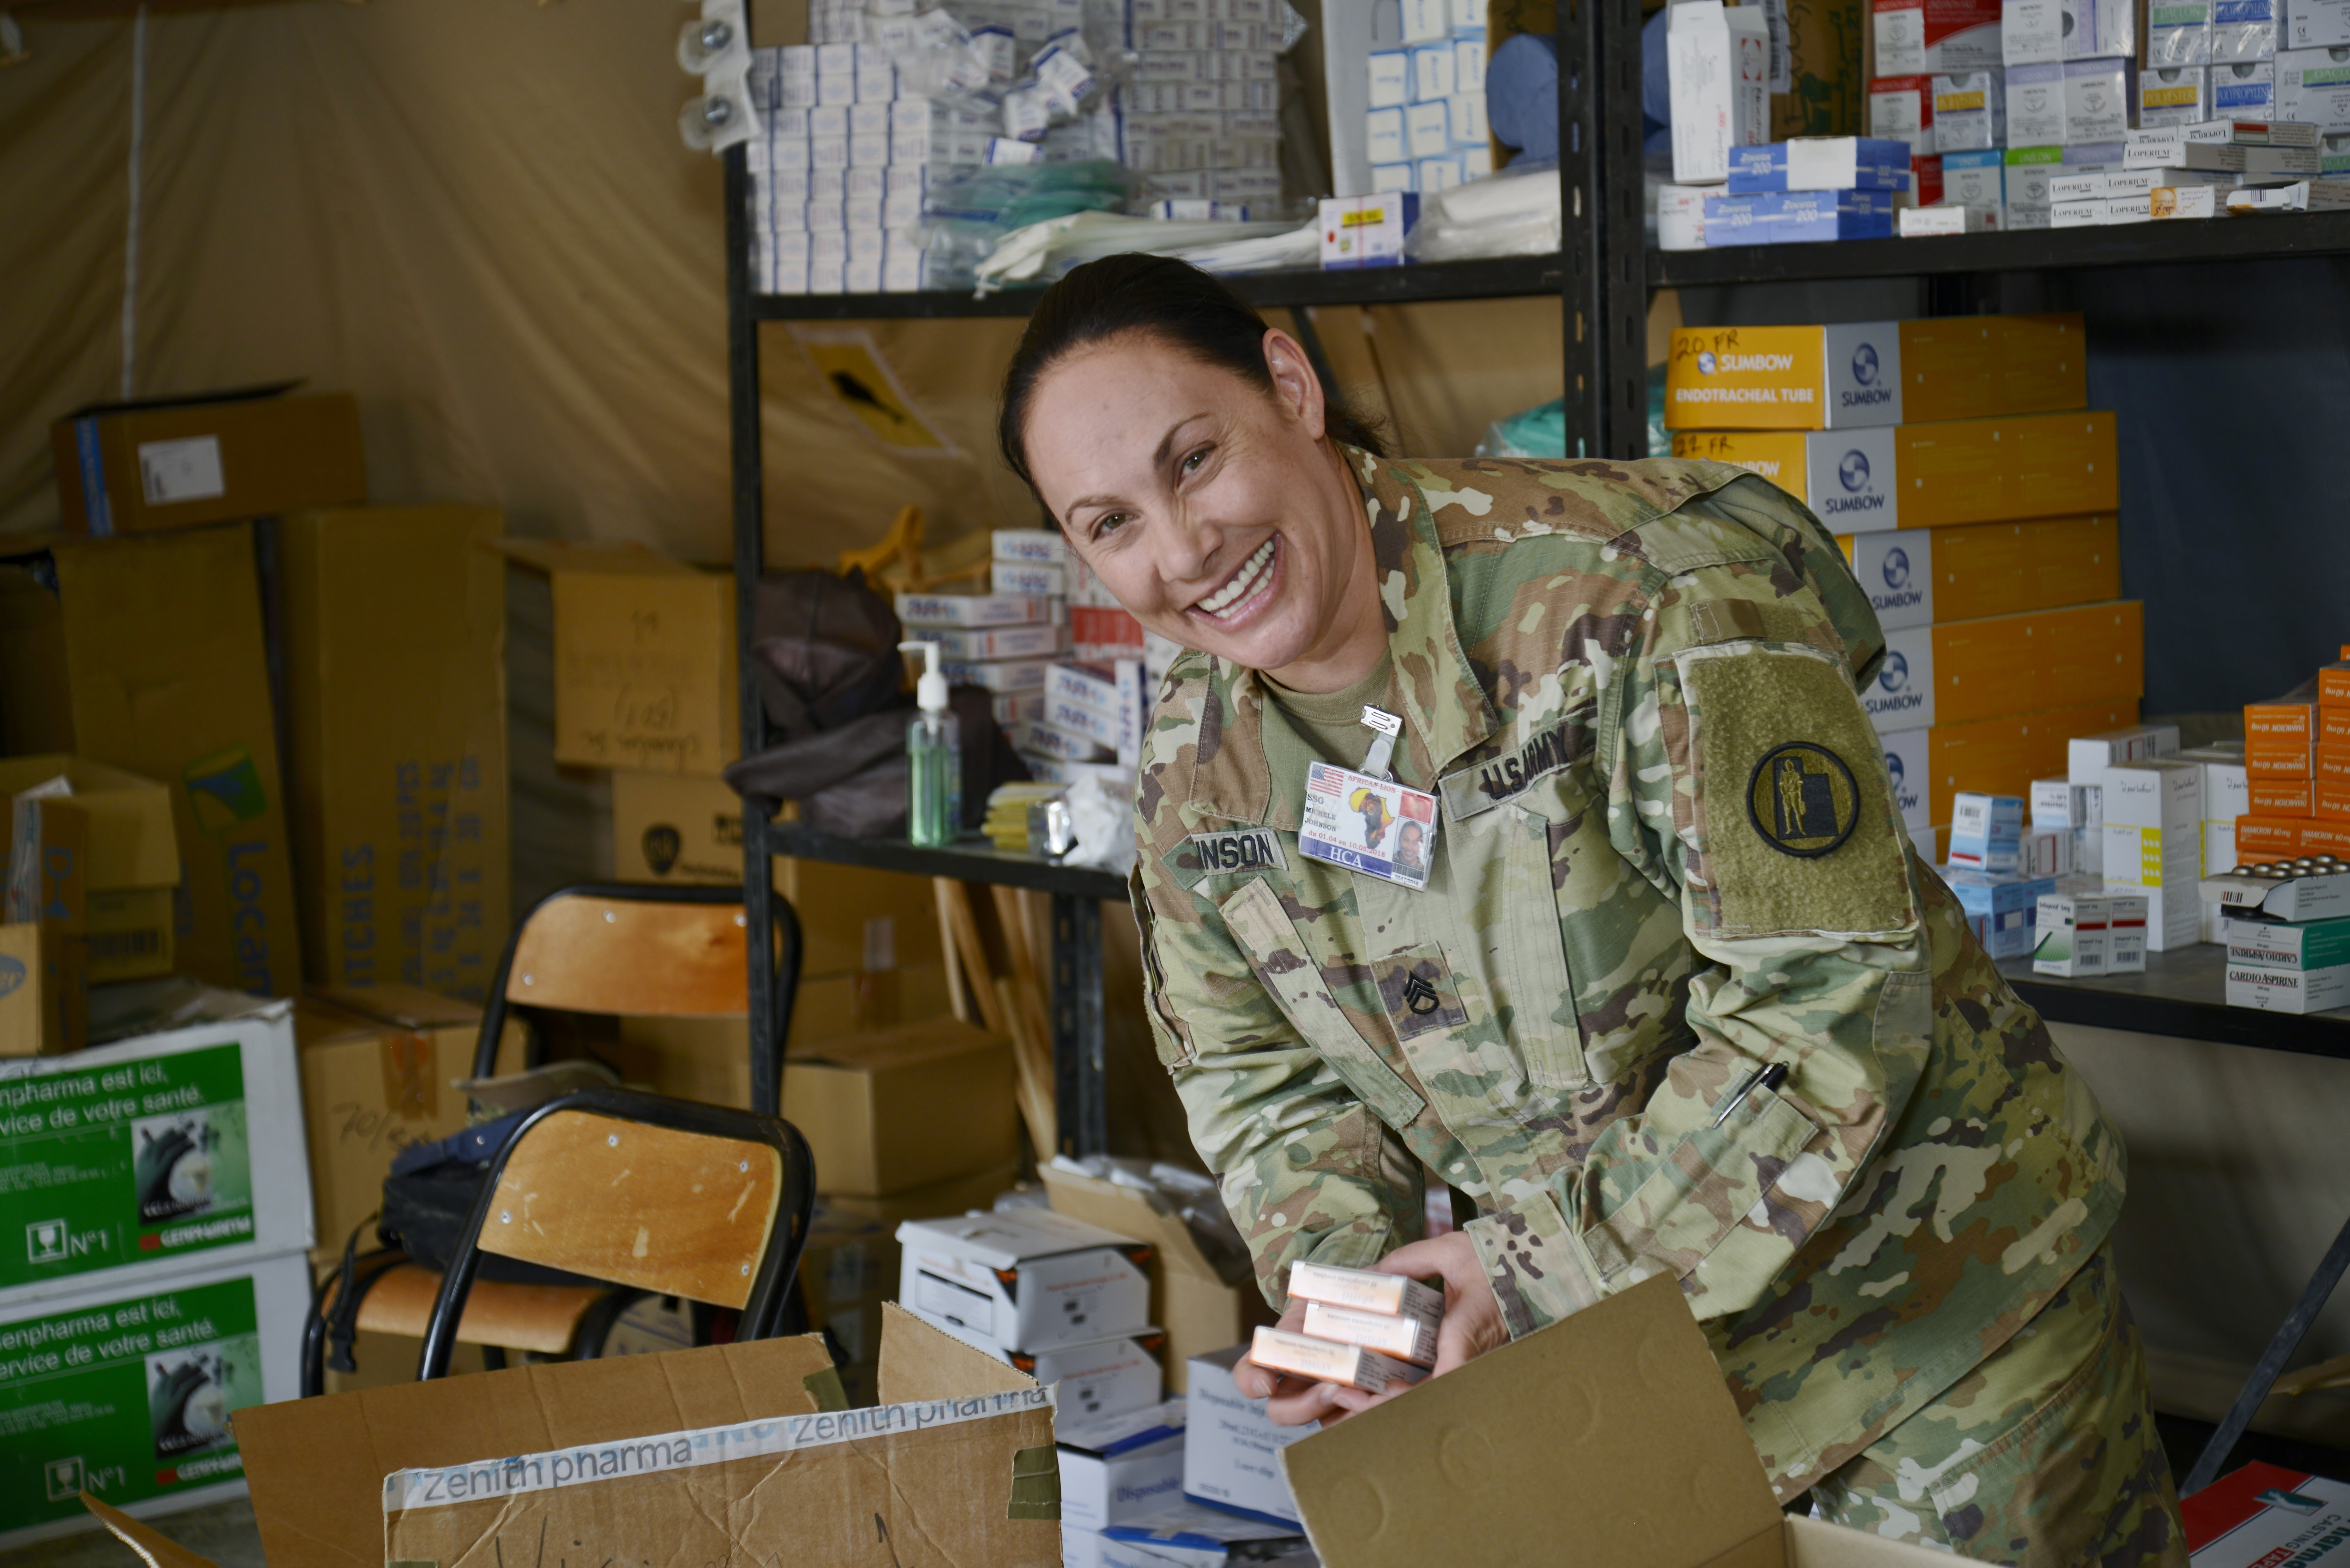 Staff Sergeant Michele Johnson, a patient administration technician with Utah Army National Guard, organizes the pharmacy during the Humanitarian Civic Assistance component of Exercise African Lion 2018 in Bounaamane, Morocco, April 25, 2018.  Exercise African Lion 2018 is a Chairman of the Joint Chiefs of Staff-sponsored, U.S. African Command-scheduled, U.S. Marine Corps Forces Europe and Africa-led, joint and combined exercise conducted in the Kingdom of Morocco. African Lion offers an opportunity to improve interoperability and cooperation while demonstrating the strong military bond that exists between the participating nations. (U.S. Army National Guard photo by Maj. Samantha Madsen)